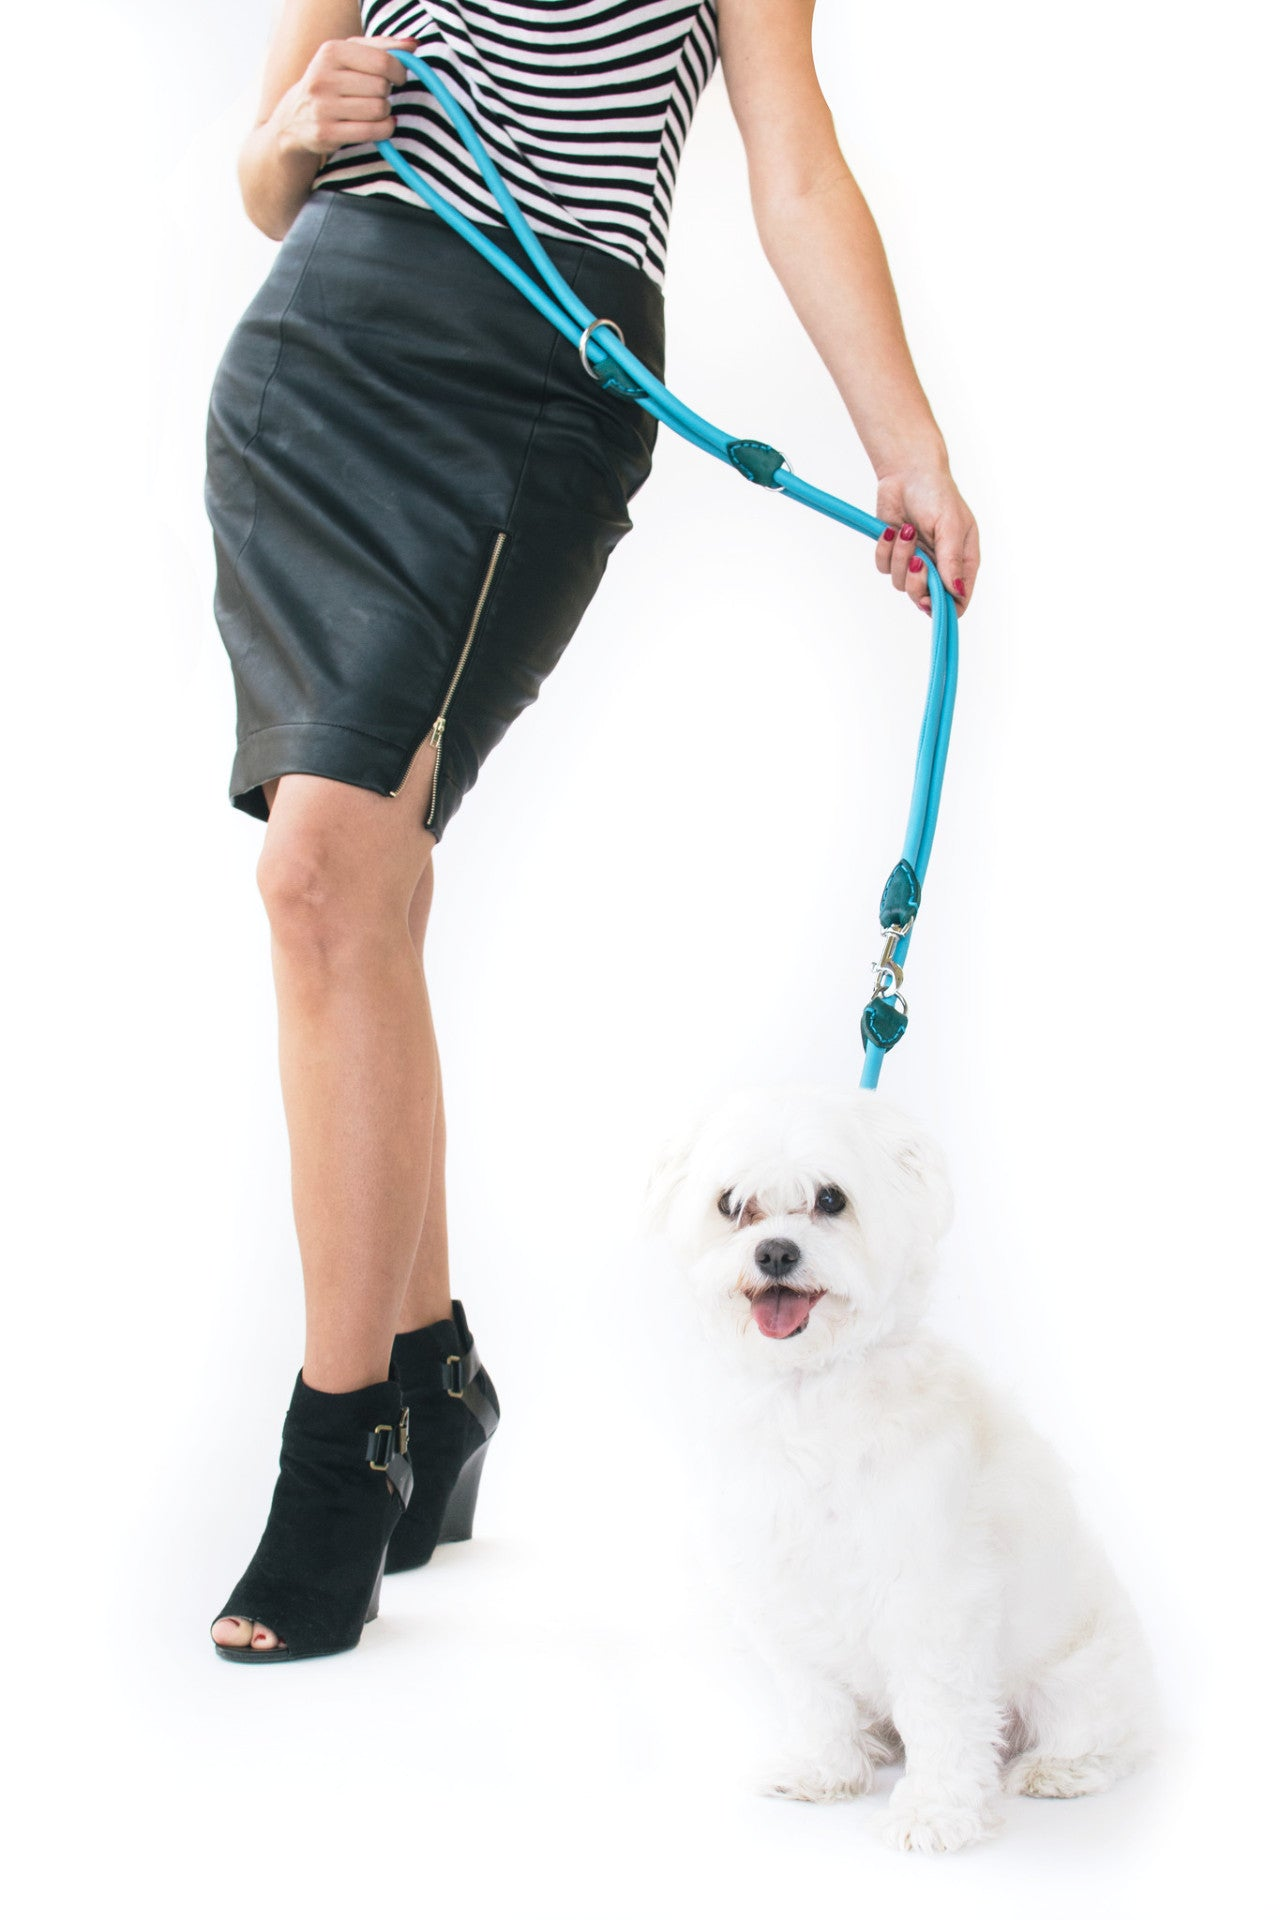 BALDY 5 Leashes in One - HUND Denmark for the Love of Pets, People, and Planet